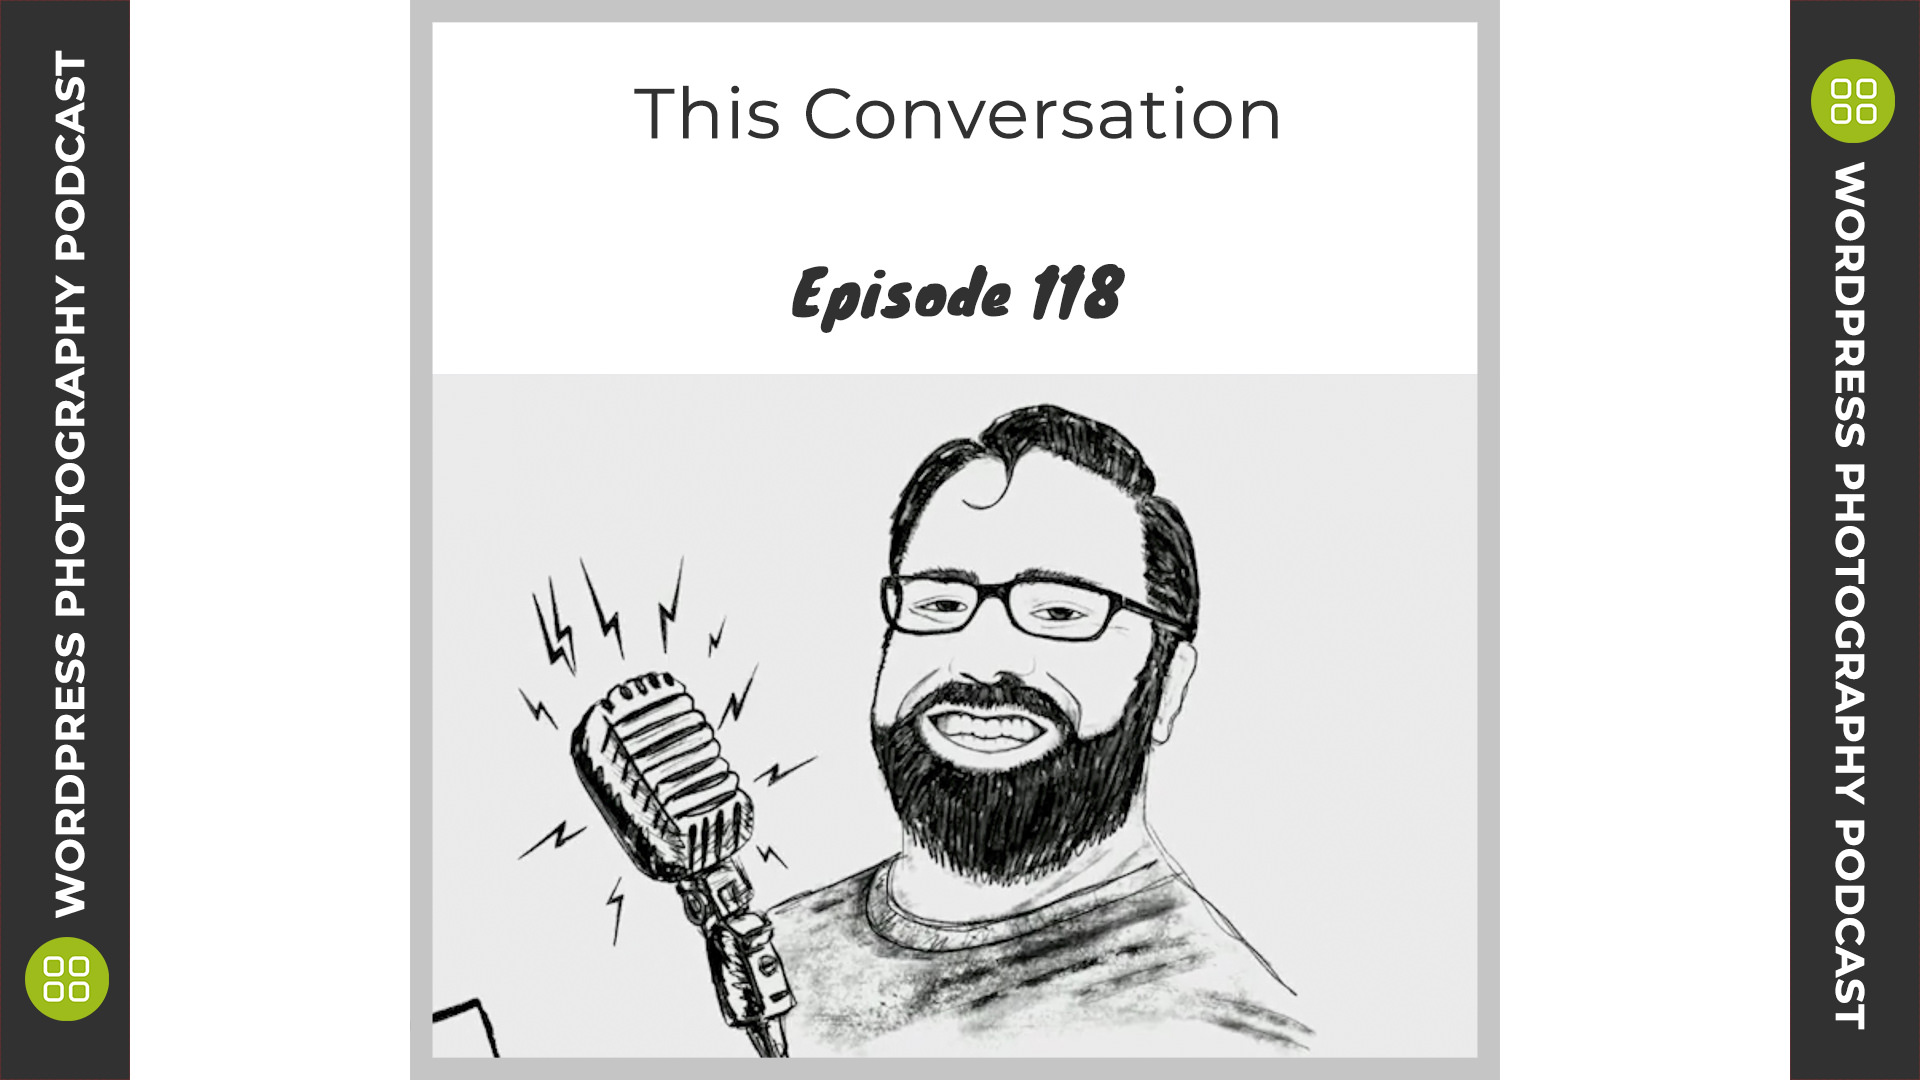 Episode 118 – This Conversation with Jed Taufer